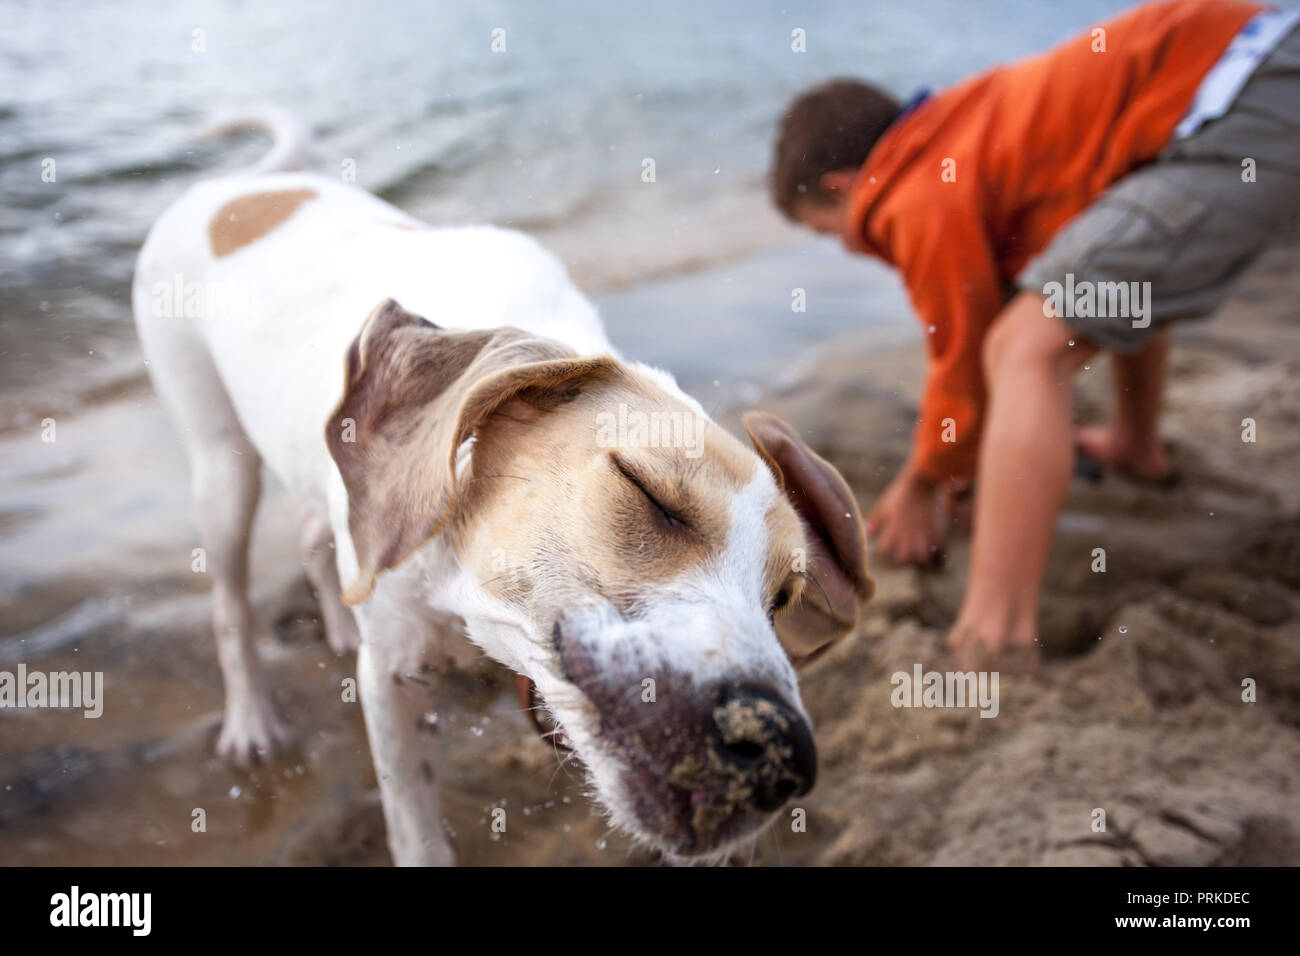 Young boy building a sandcastle with a dog shaking sand and water from itself - Stock Image